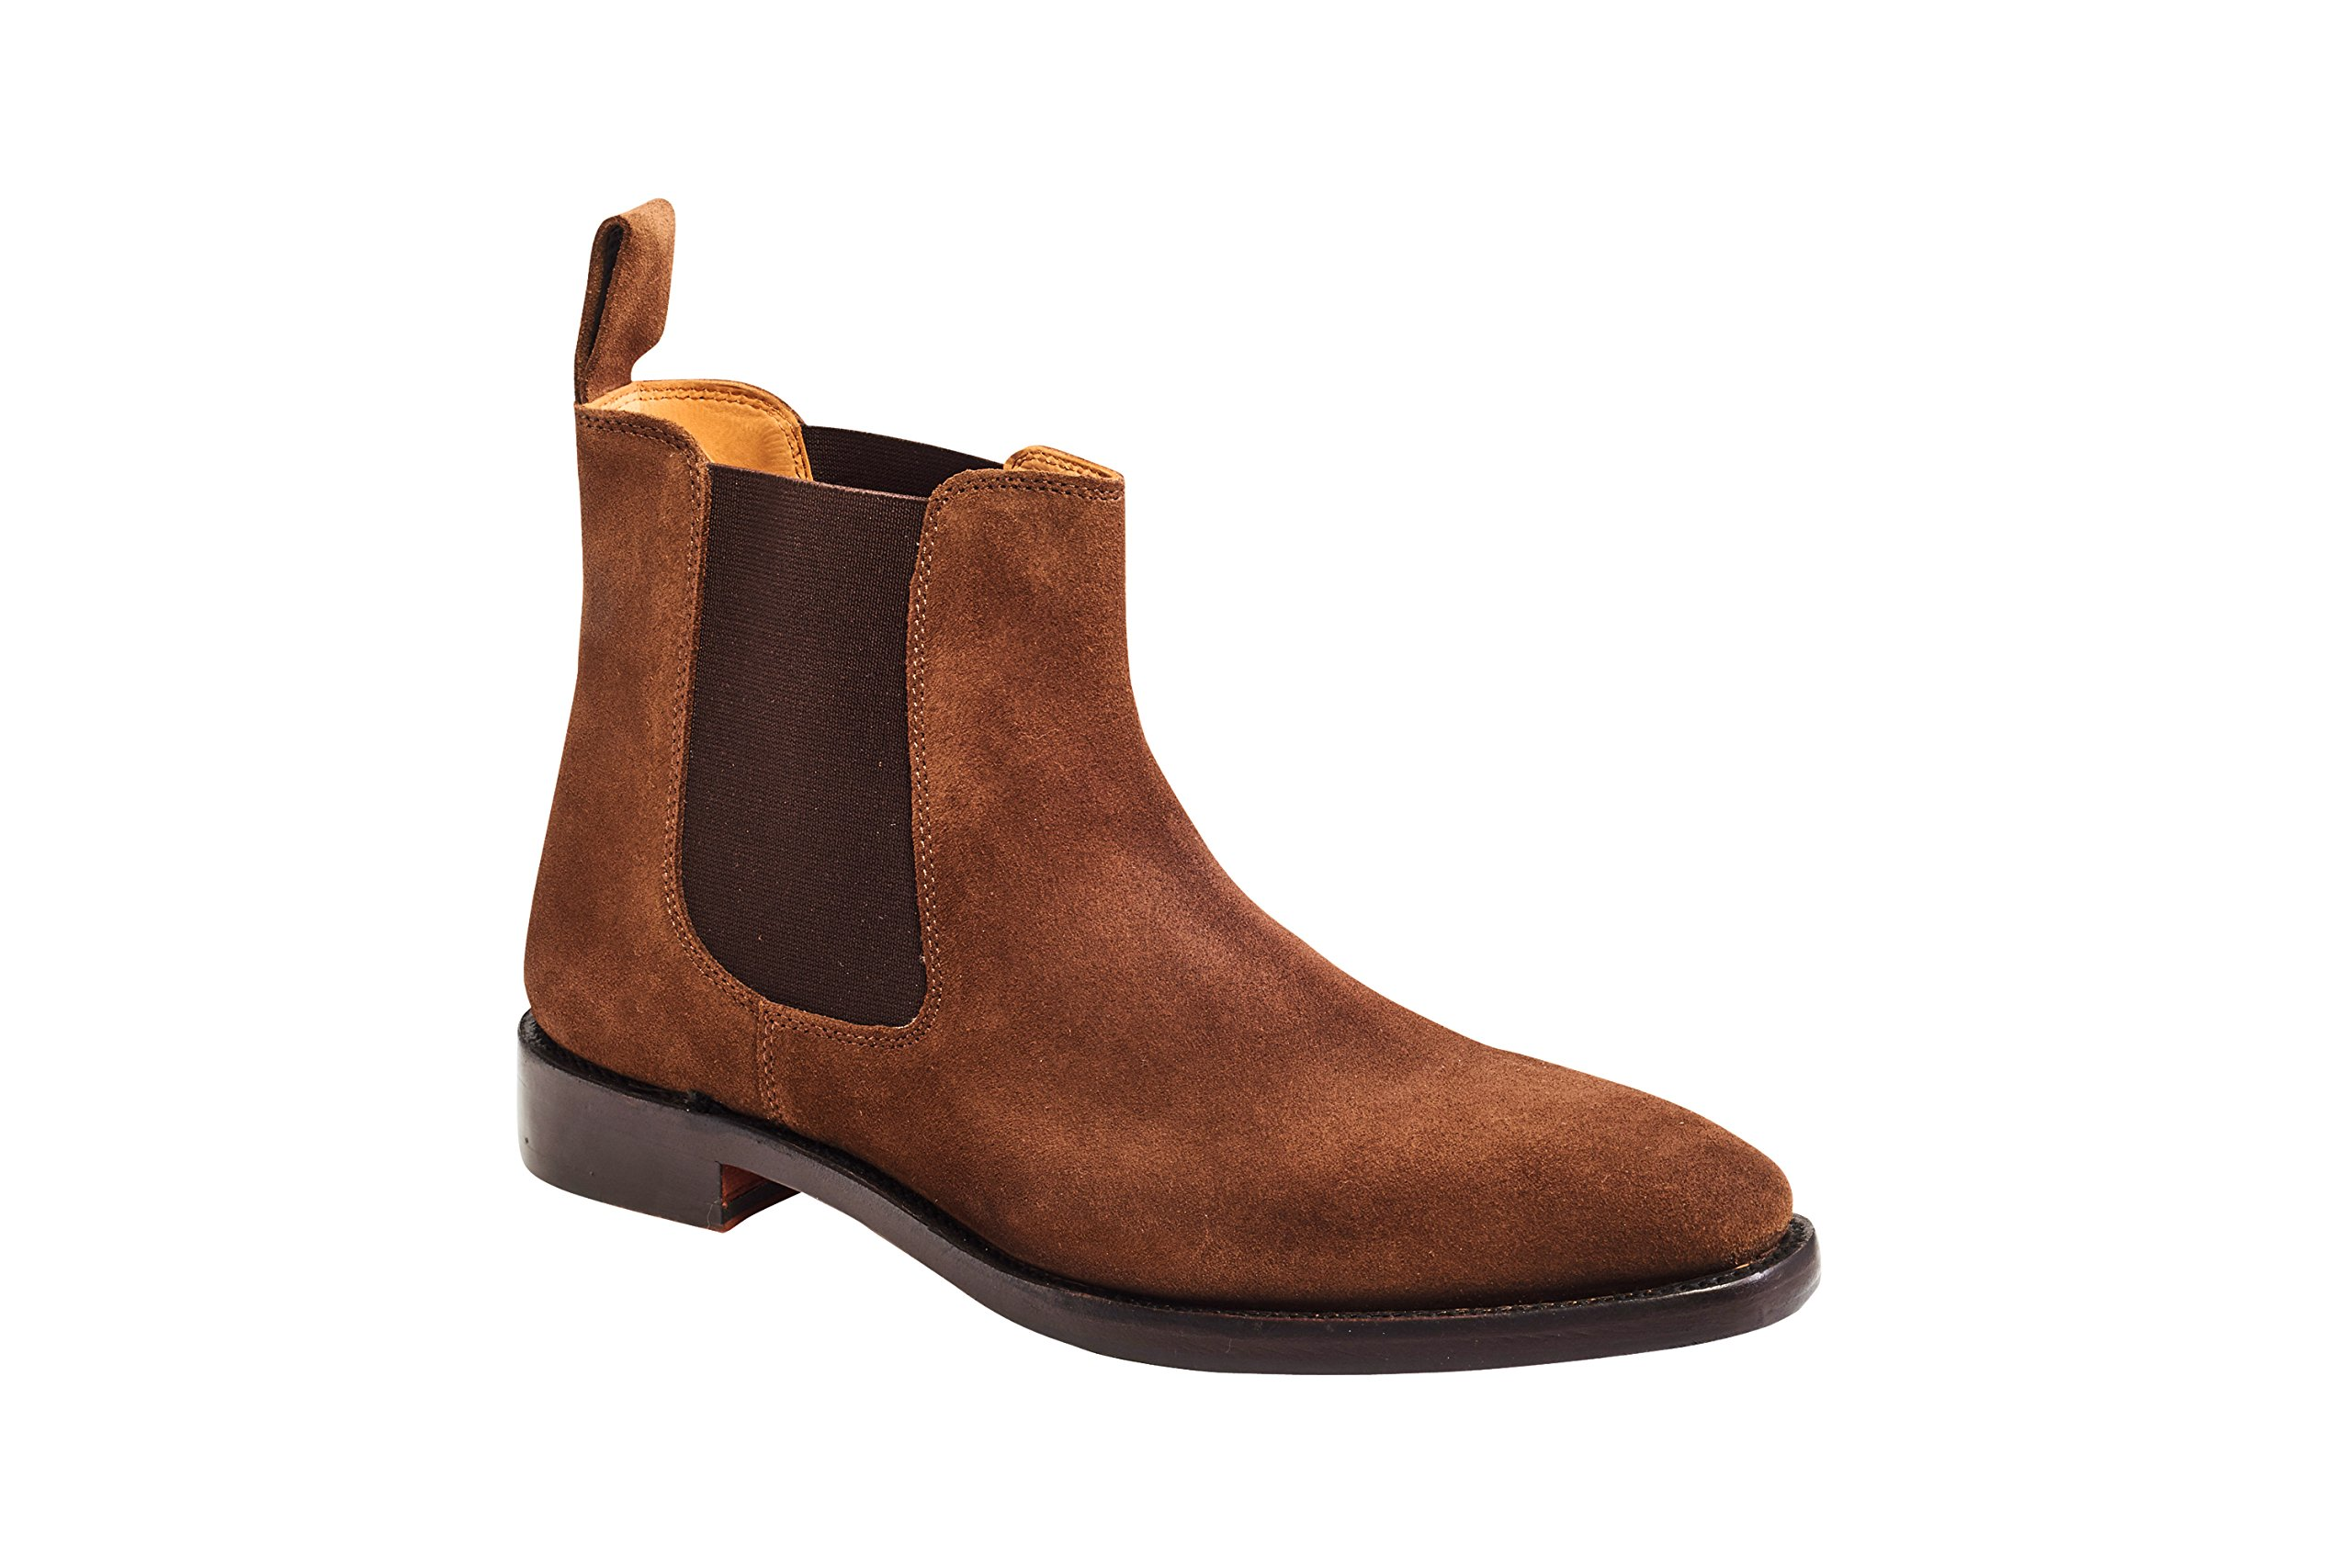 Carlos by Carlos Santana Menís Calavera Chelsea Boot In Goodyear Welted Construction (13 D, Honey Brown) by Carlos by Carlos Santana